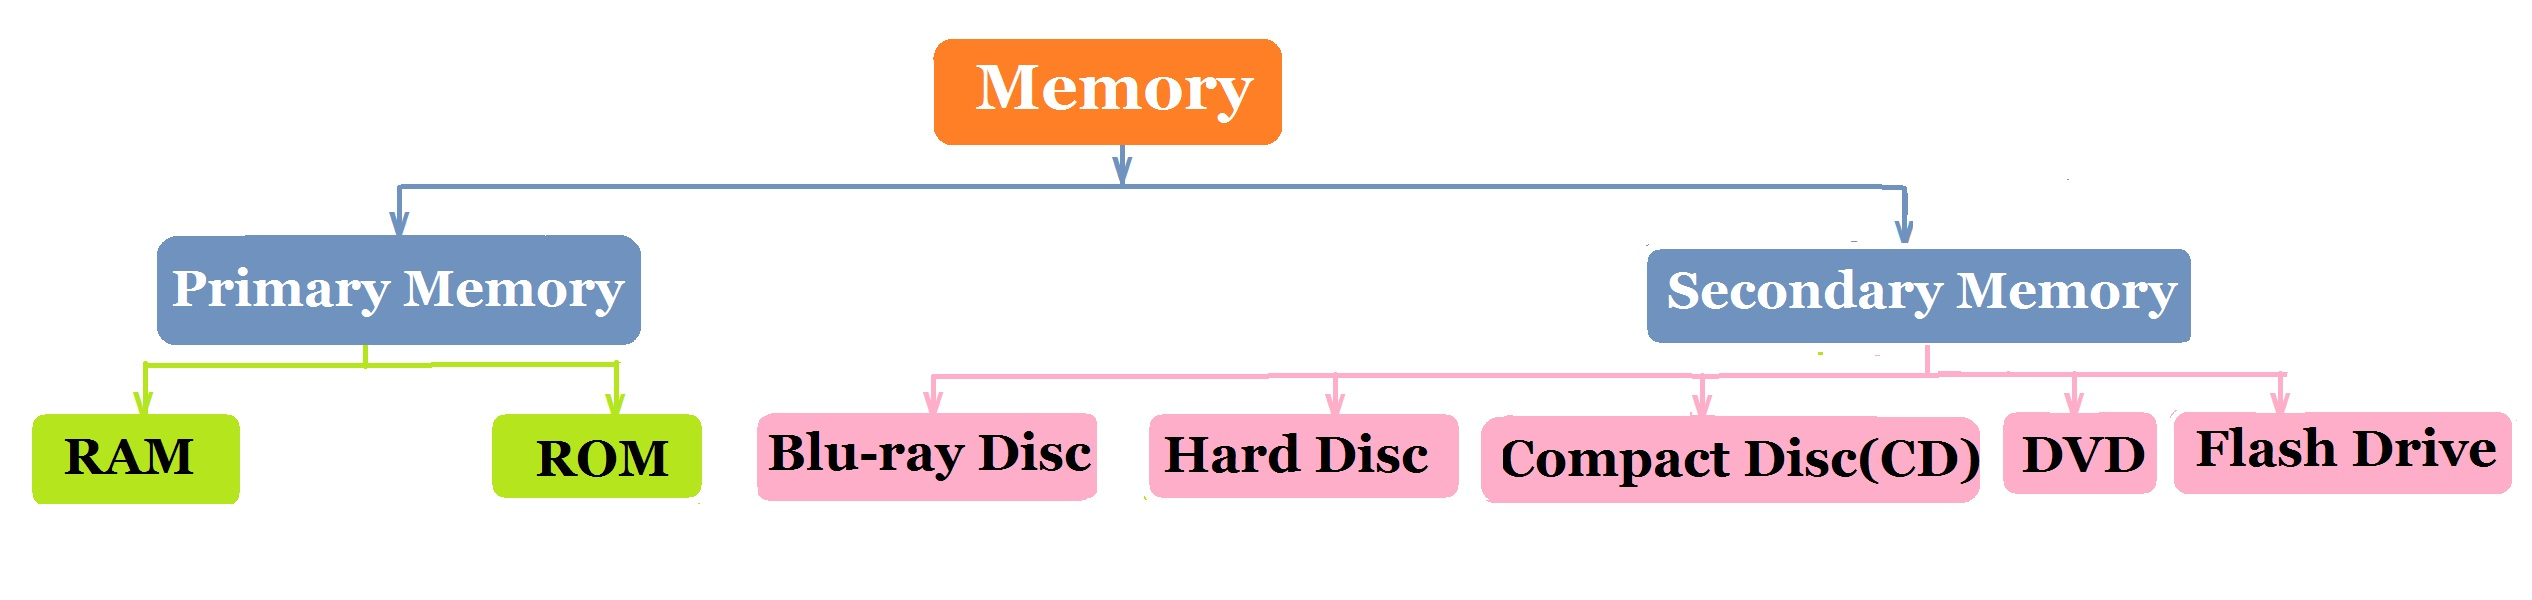 The memory of the computer is divided into two categories